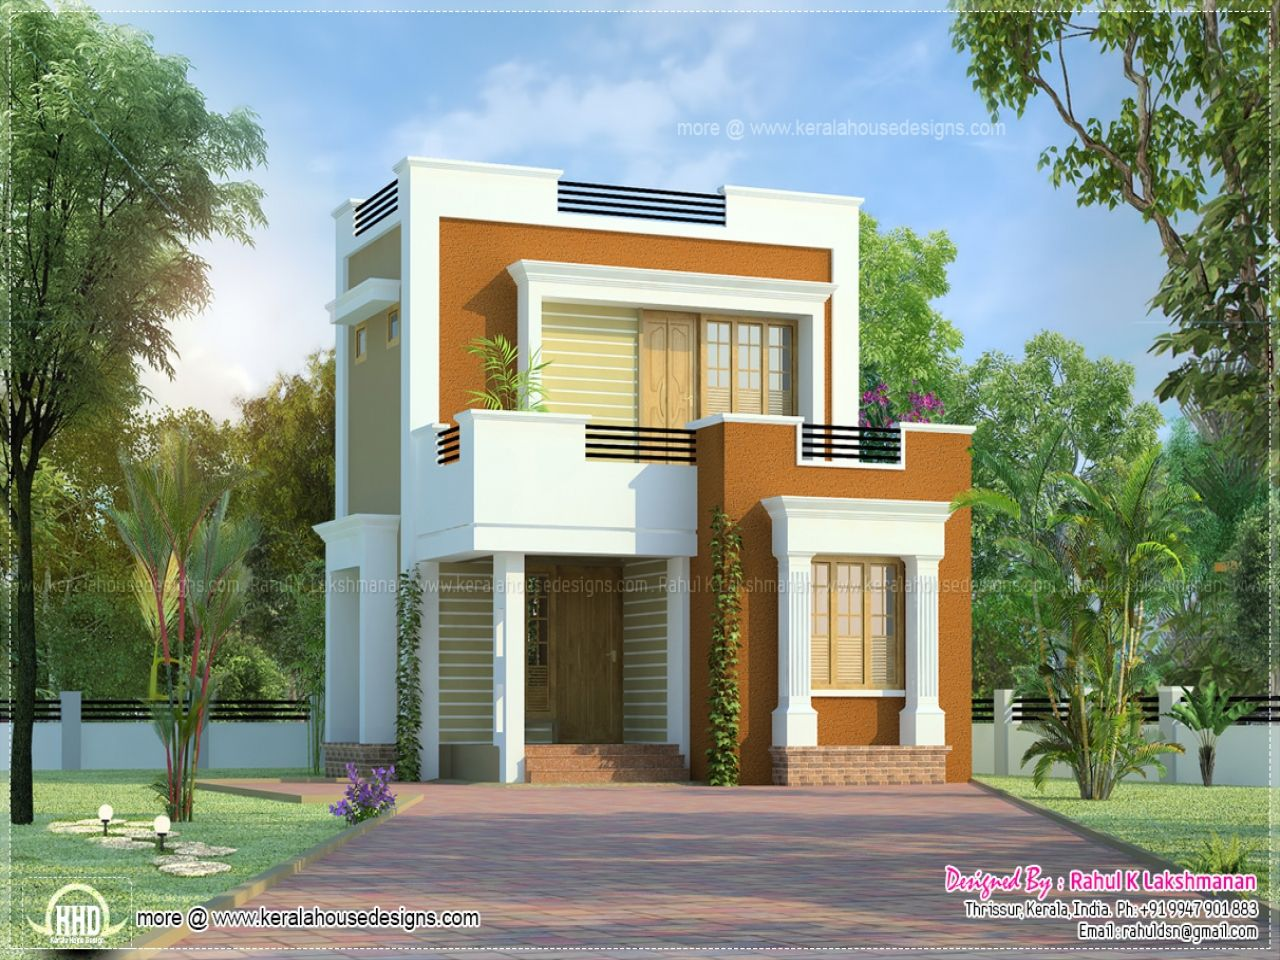 Small House Plans Concentrate On An Efficient Use Of Space That Makes The Home Feel Bigger Small House Design Philippines Small House Images Cool House Designs